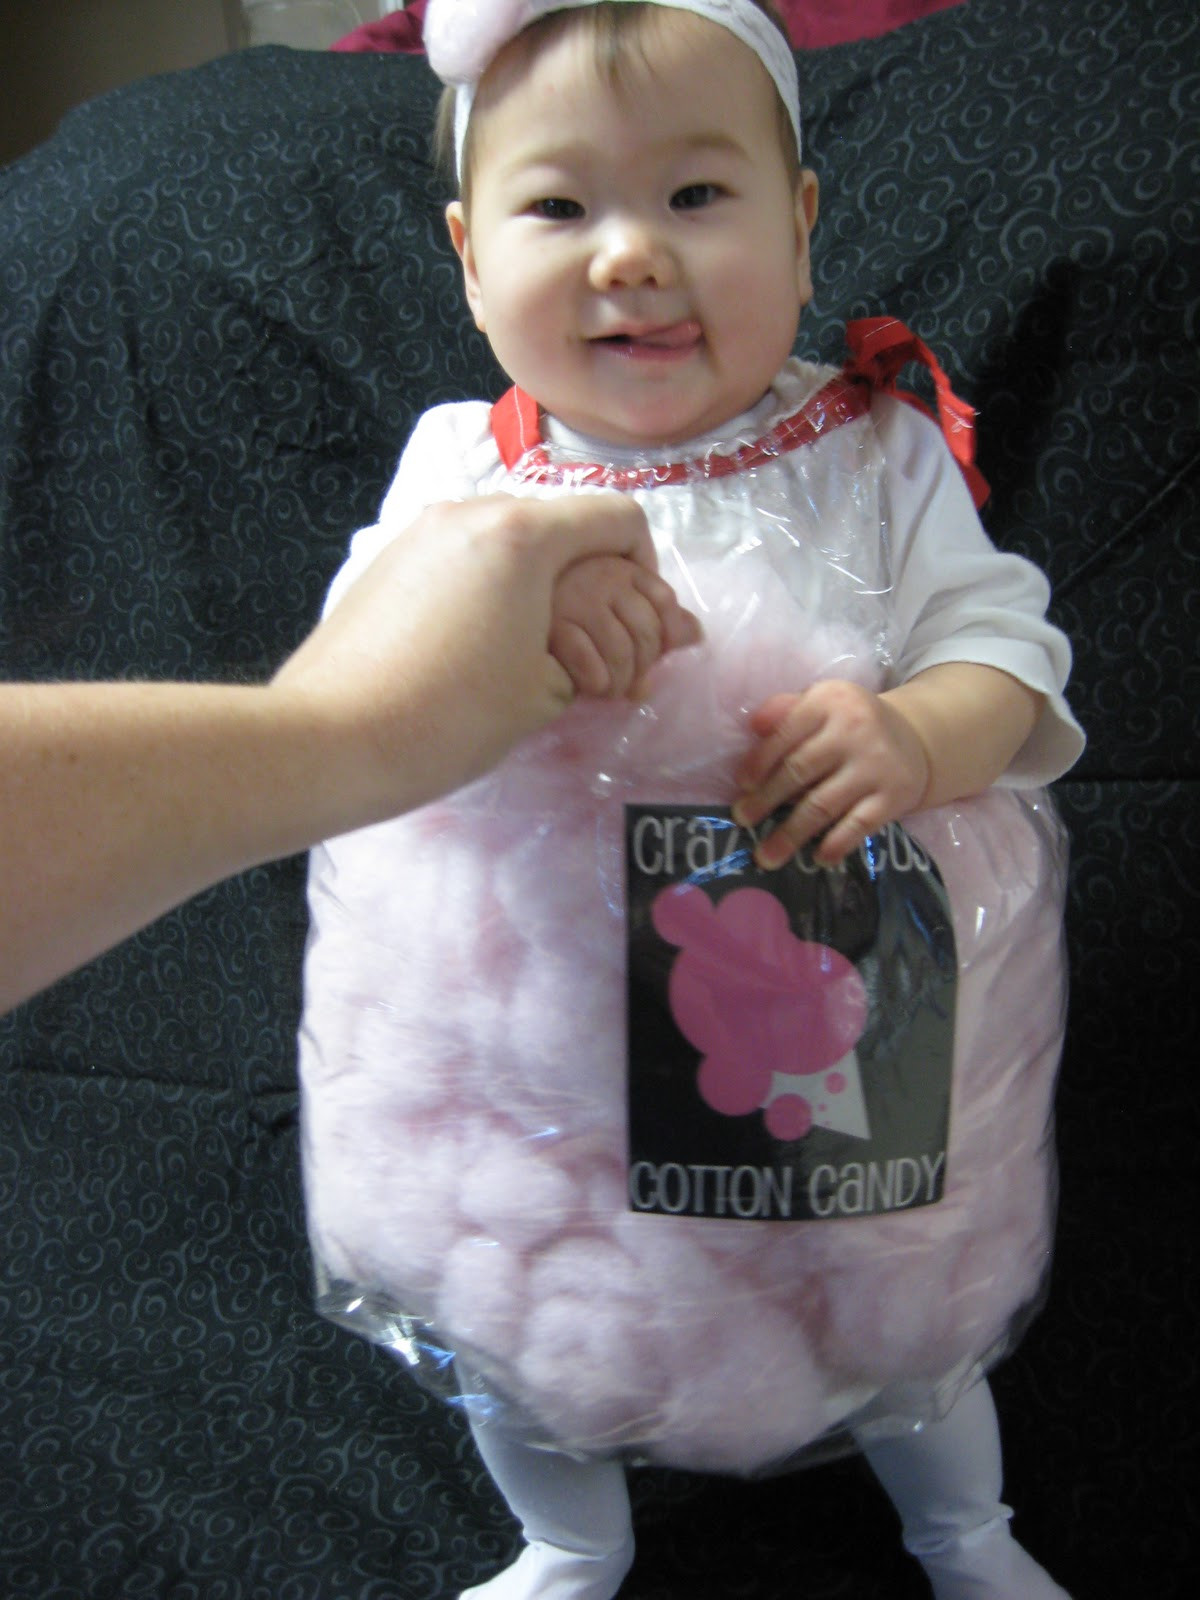 Best ideas about Kids Halloween Costumes DIY . Save or Pin SweeterThanSweets Cutest Handmade DIY Kids Halloween Now.